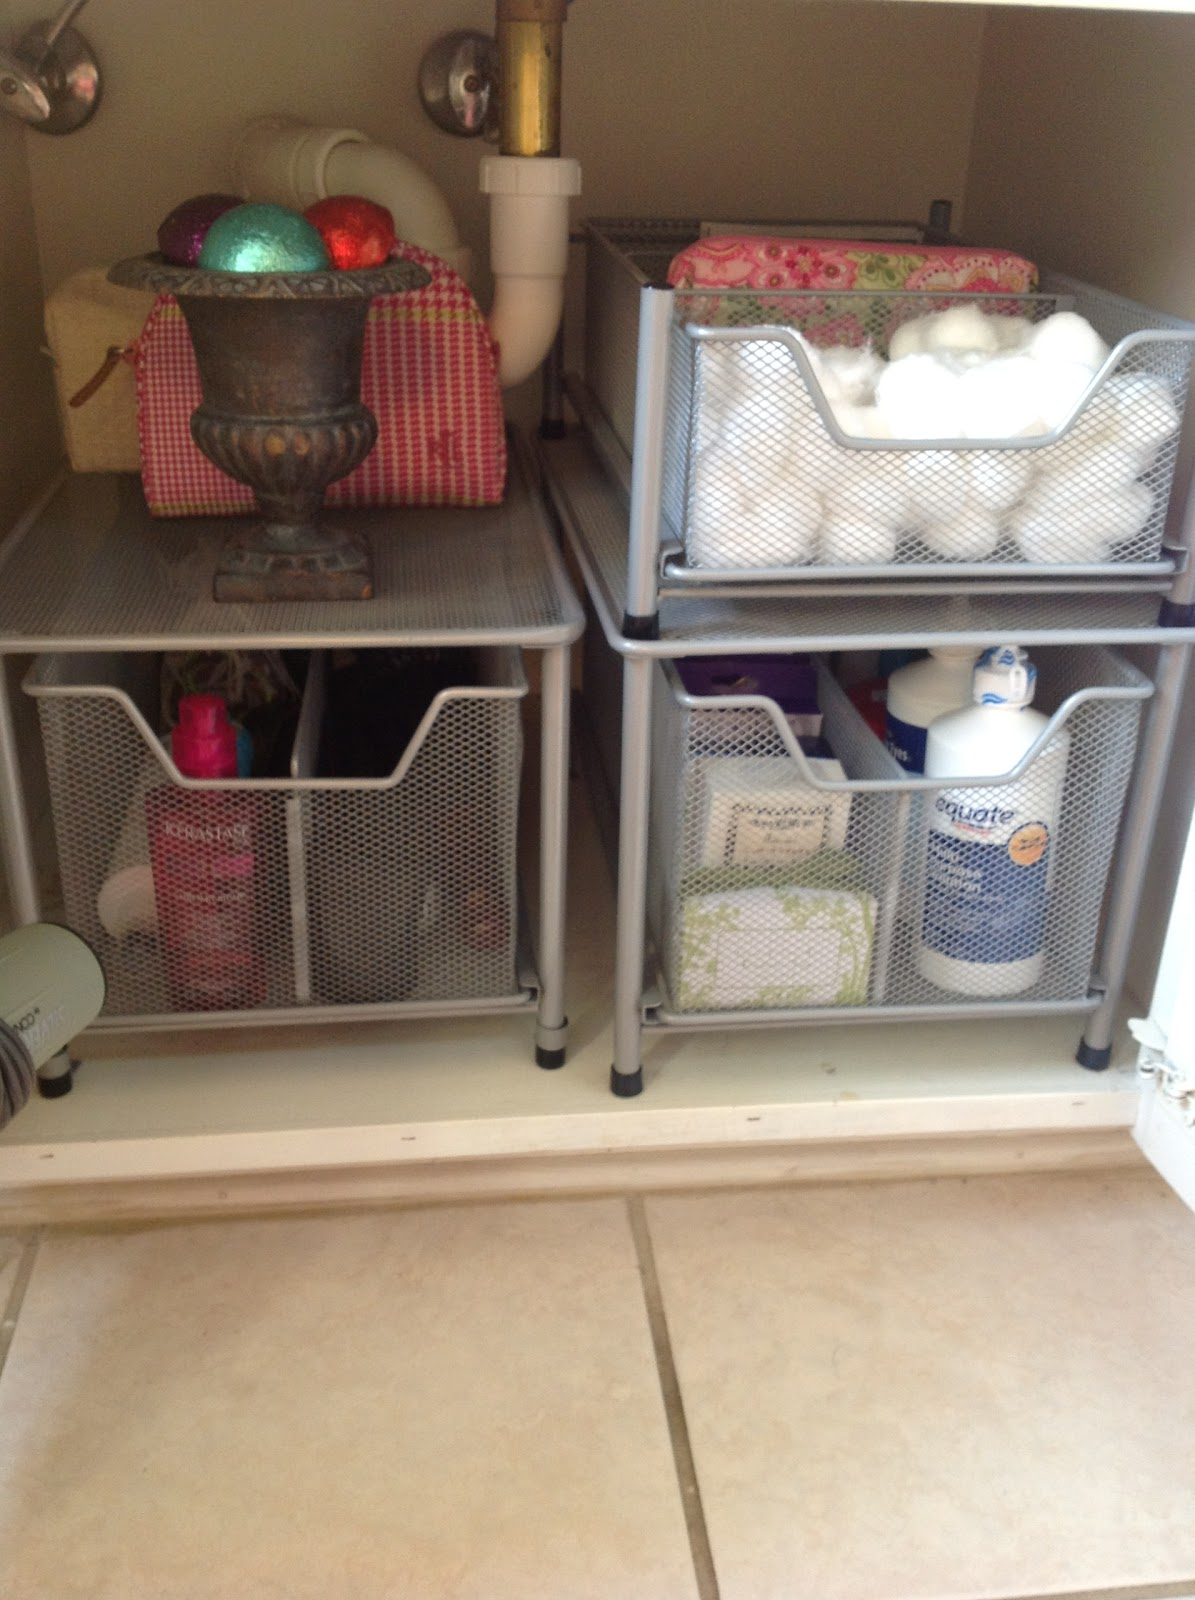 is for organize under the bathroom sink